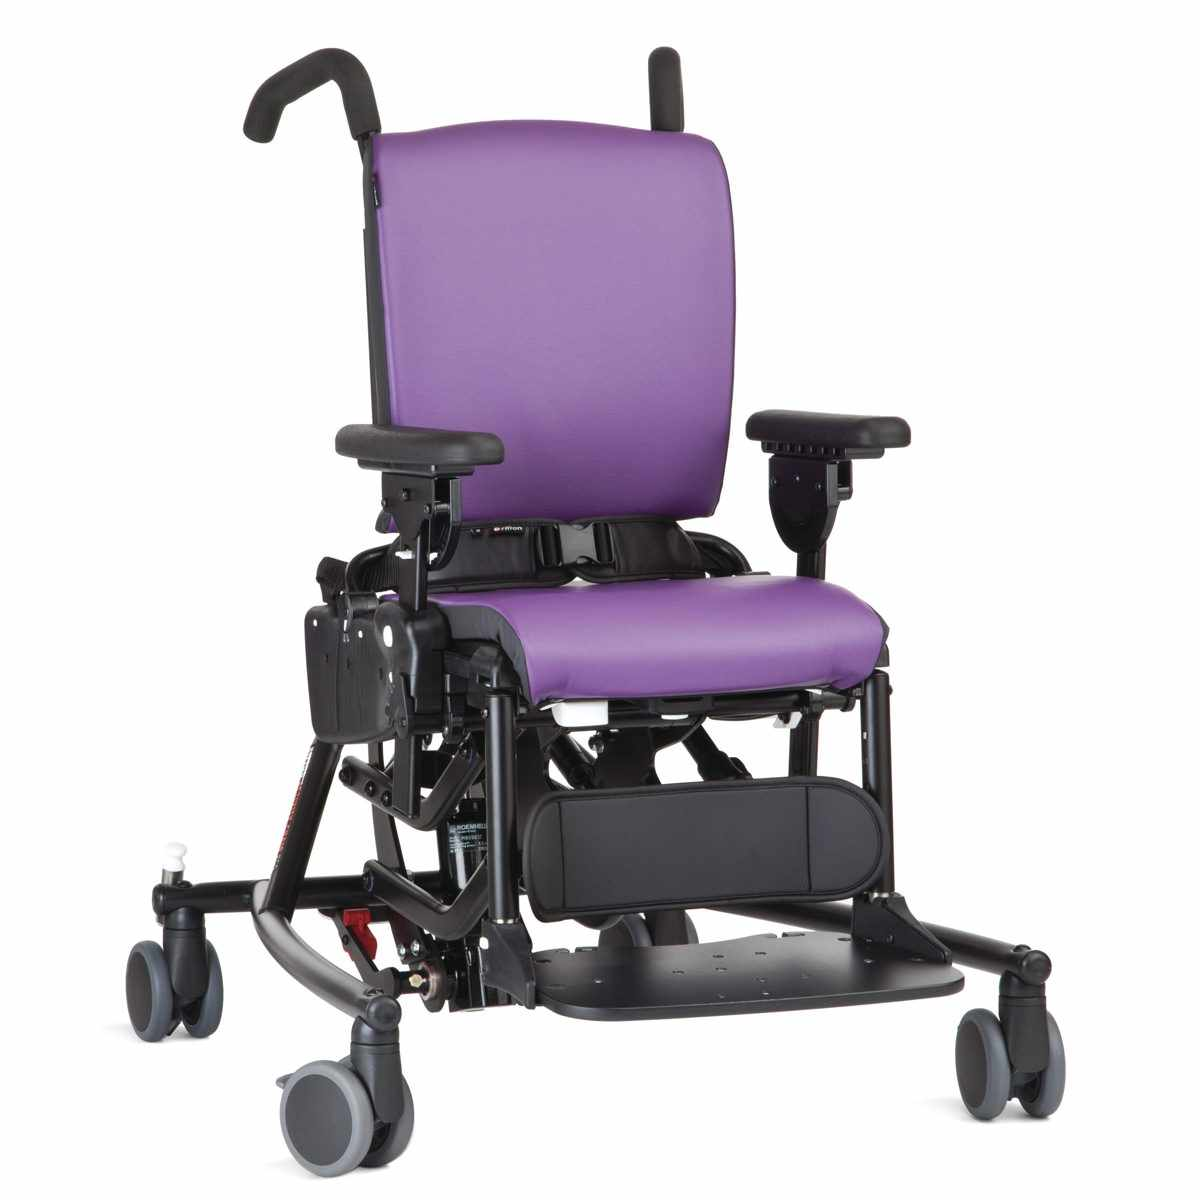 Rifton activity chair with hi-lo base - Small